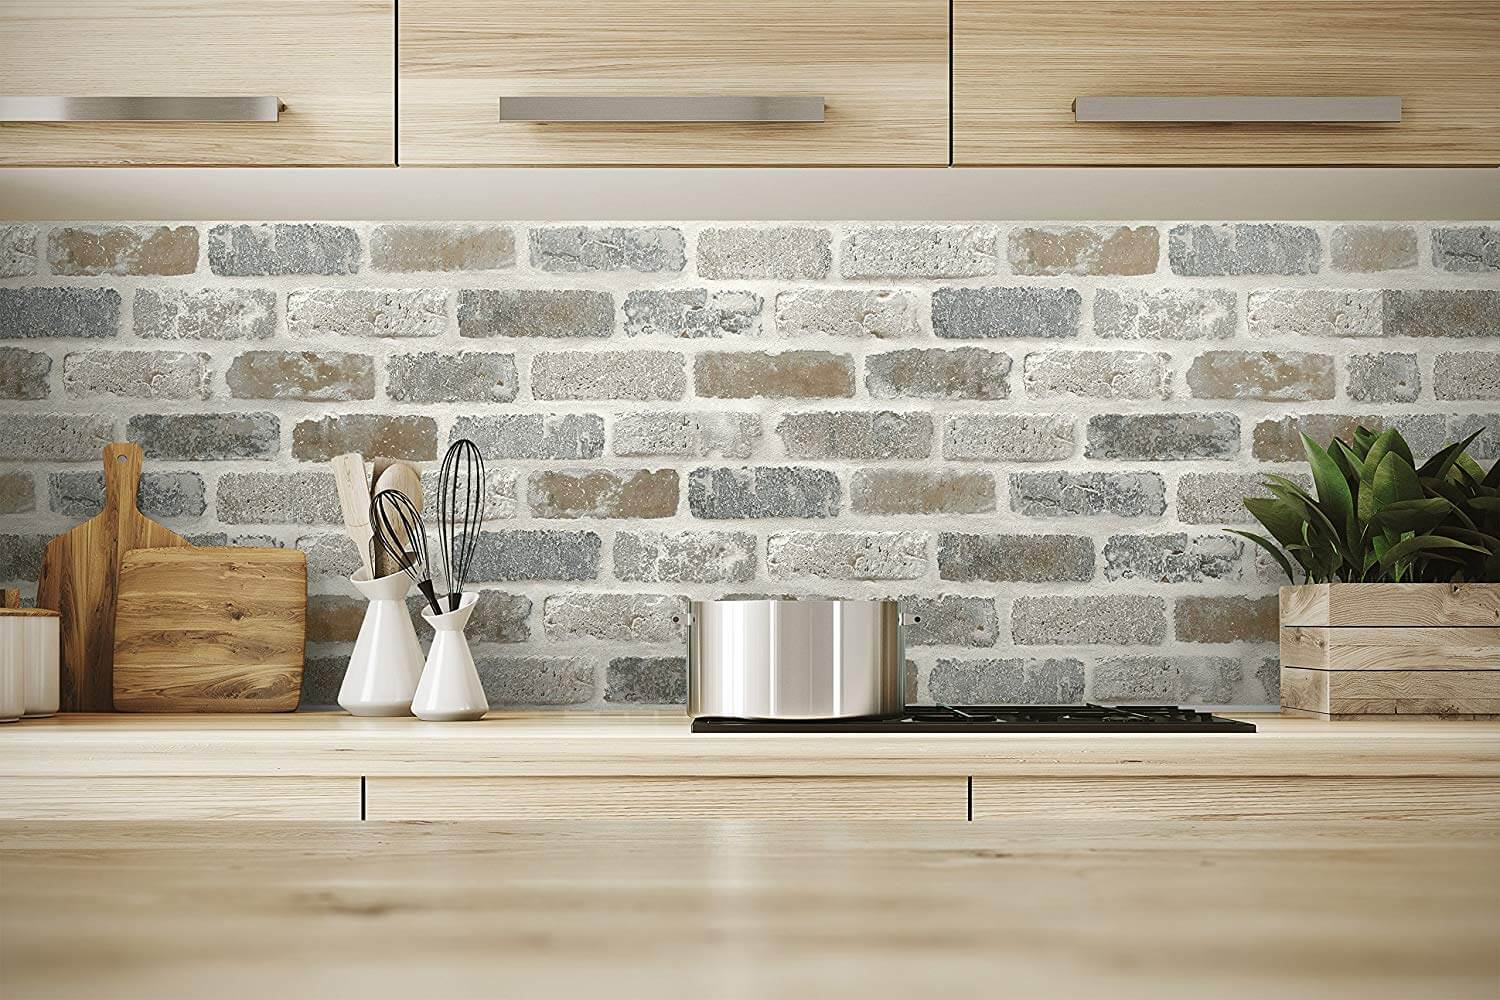 Brick backsplash ideas with NextWall Washed Faux Brick Peel and Stick Wallpaper with wood cabinets